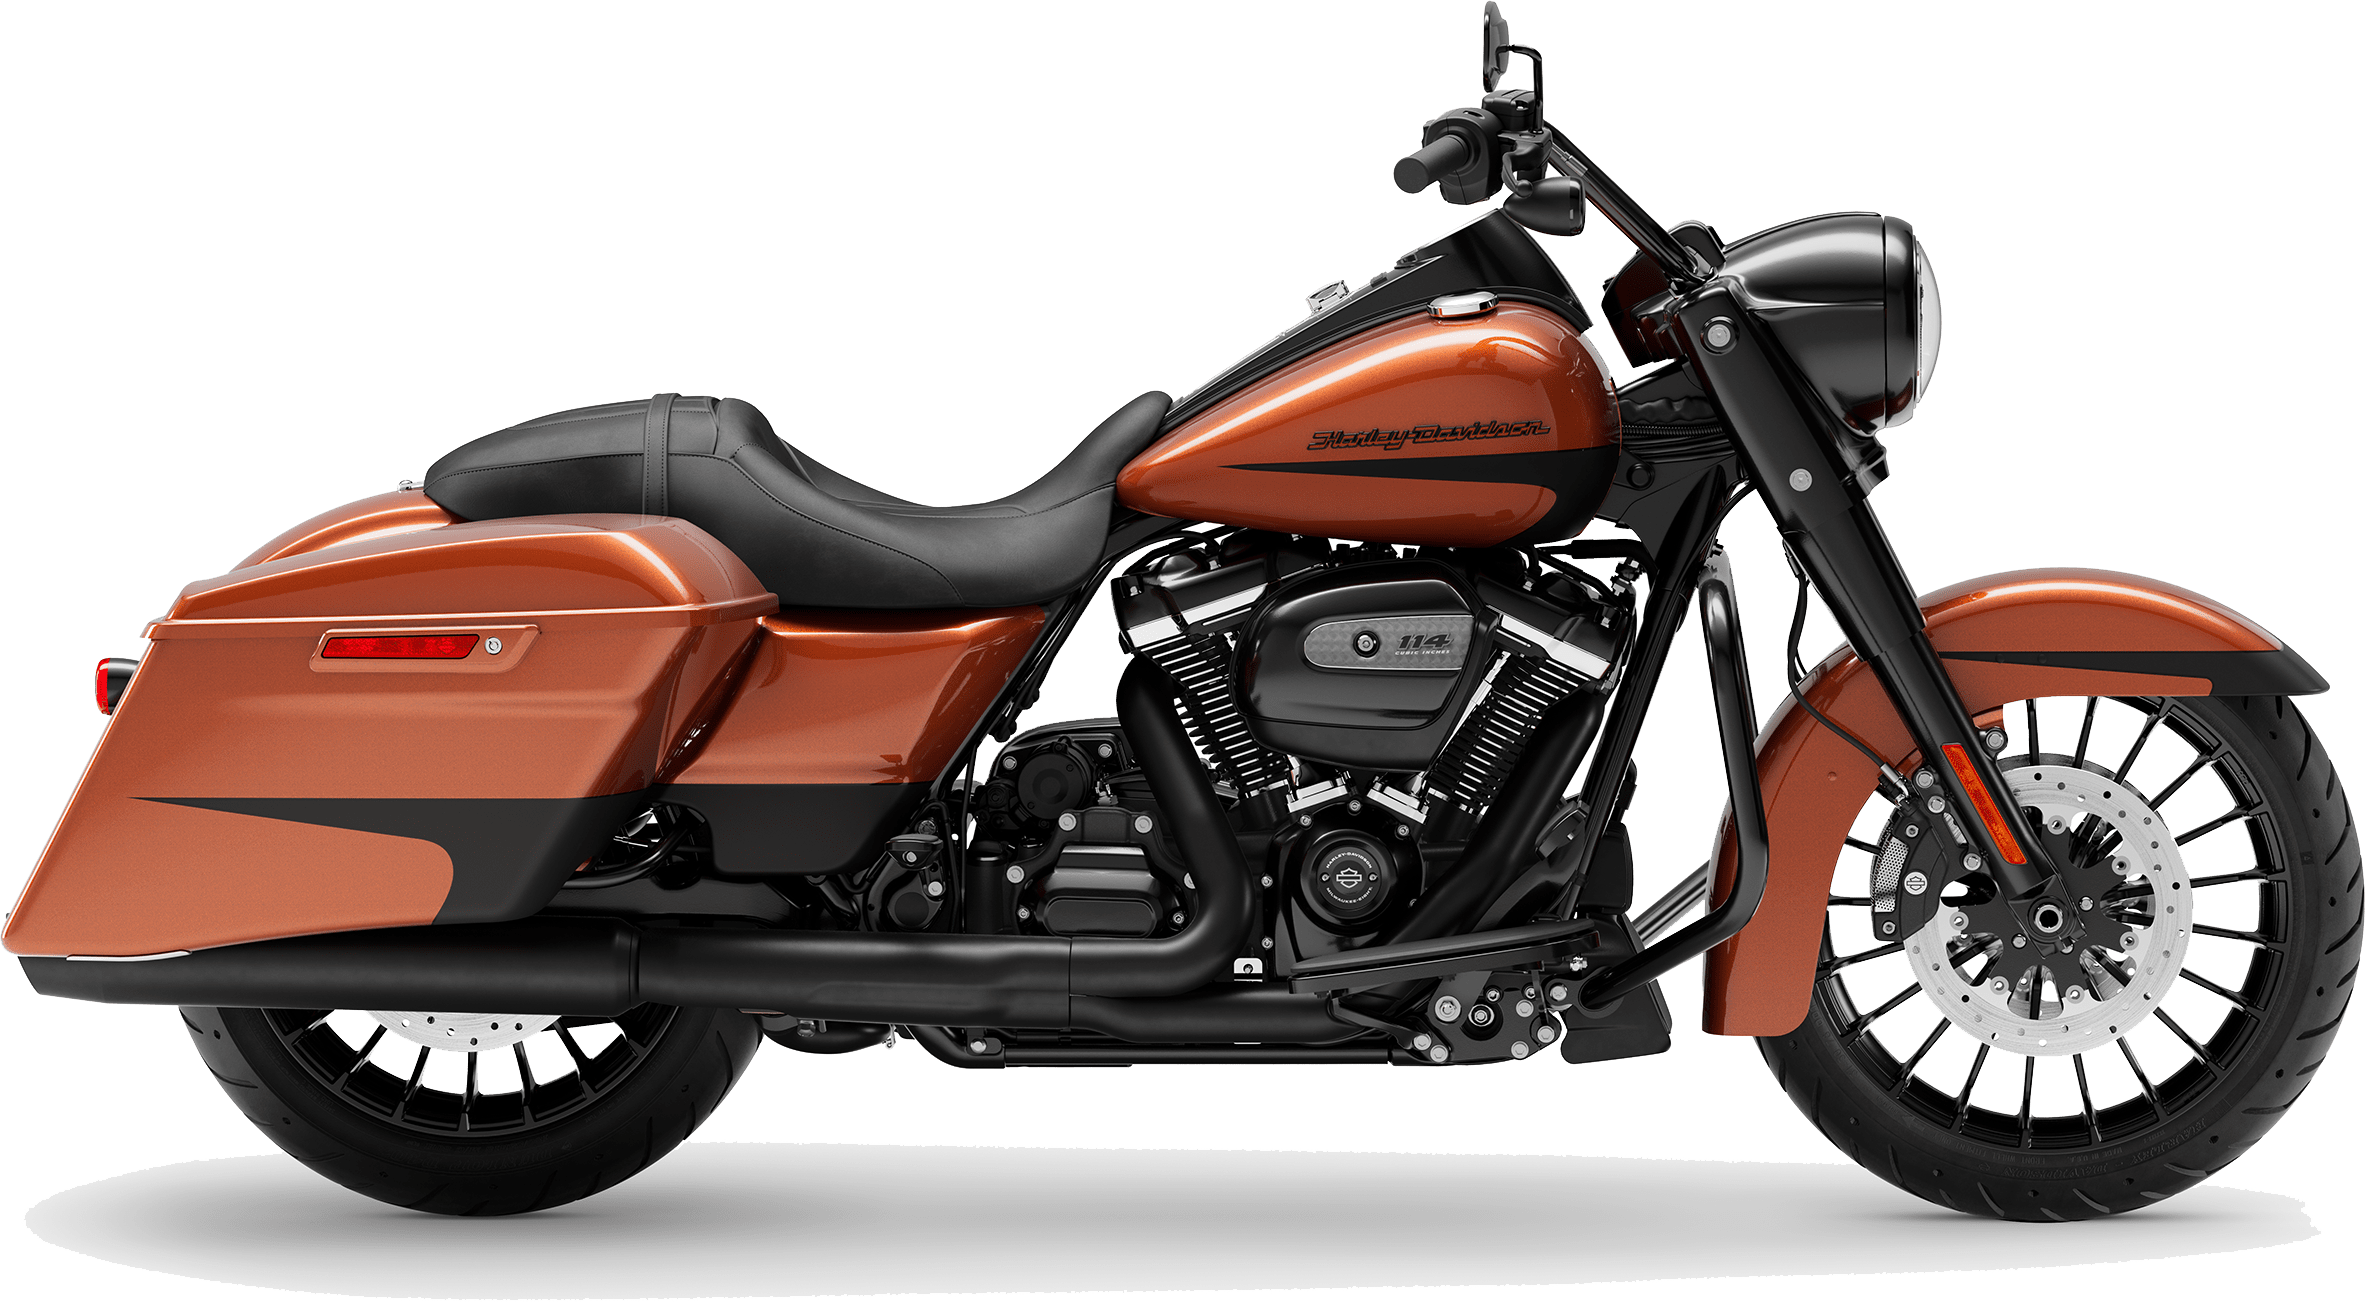 2019 Harley-Davidson H-D Touring Road King Special Scorched Orange Black Denim